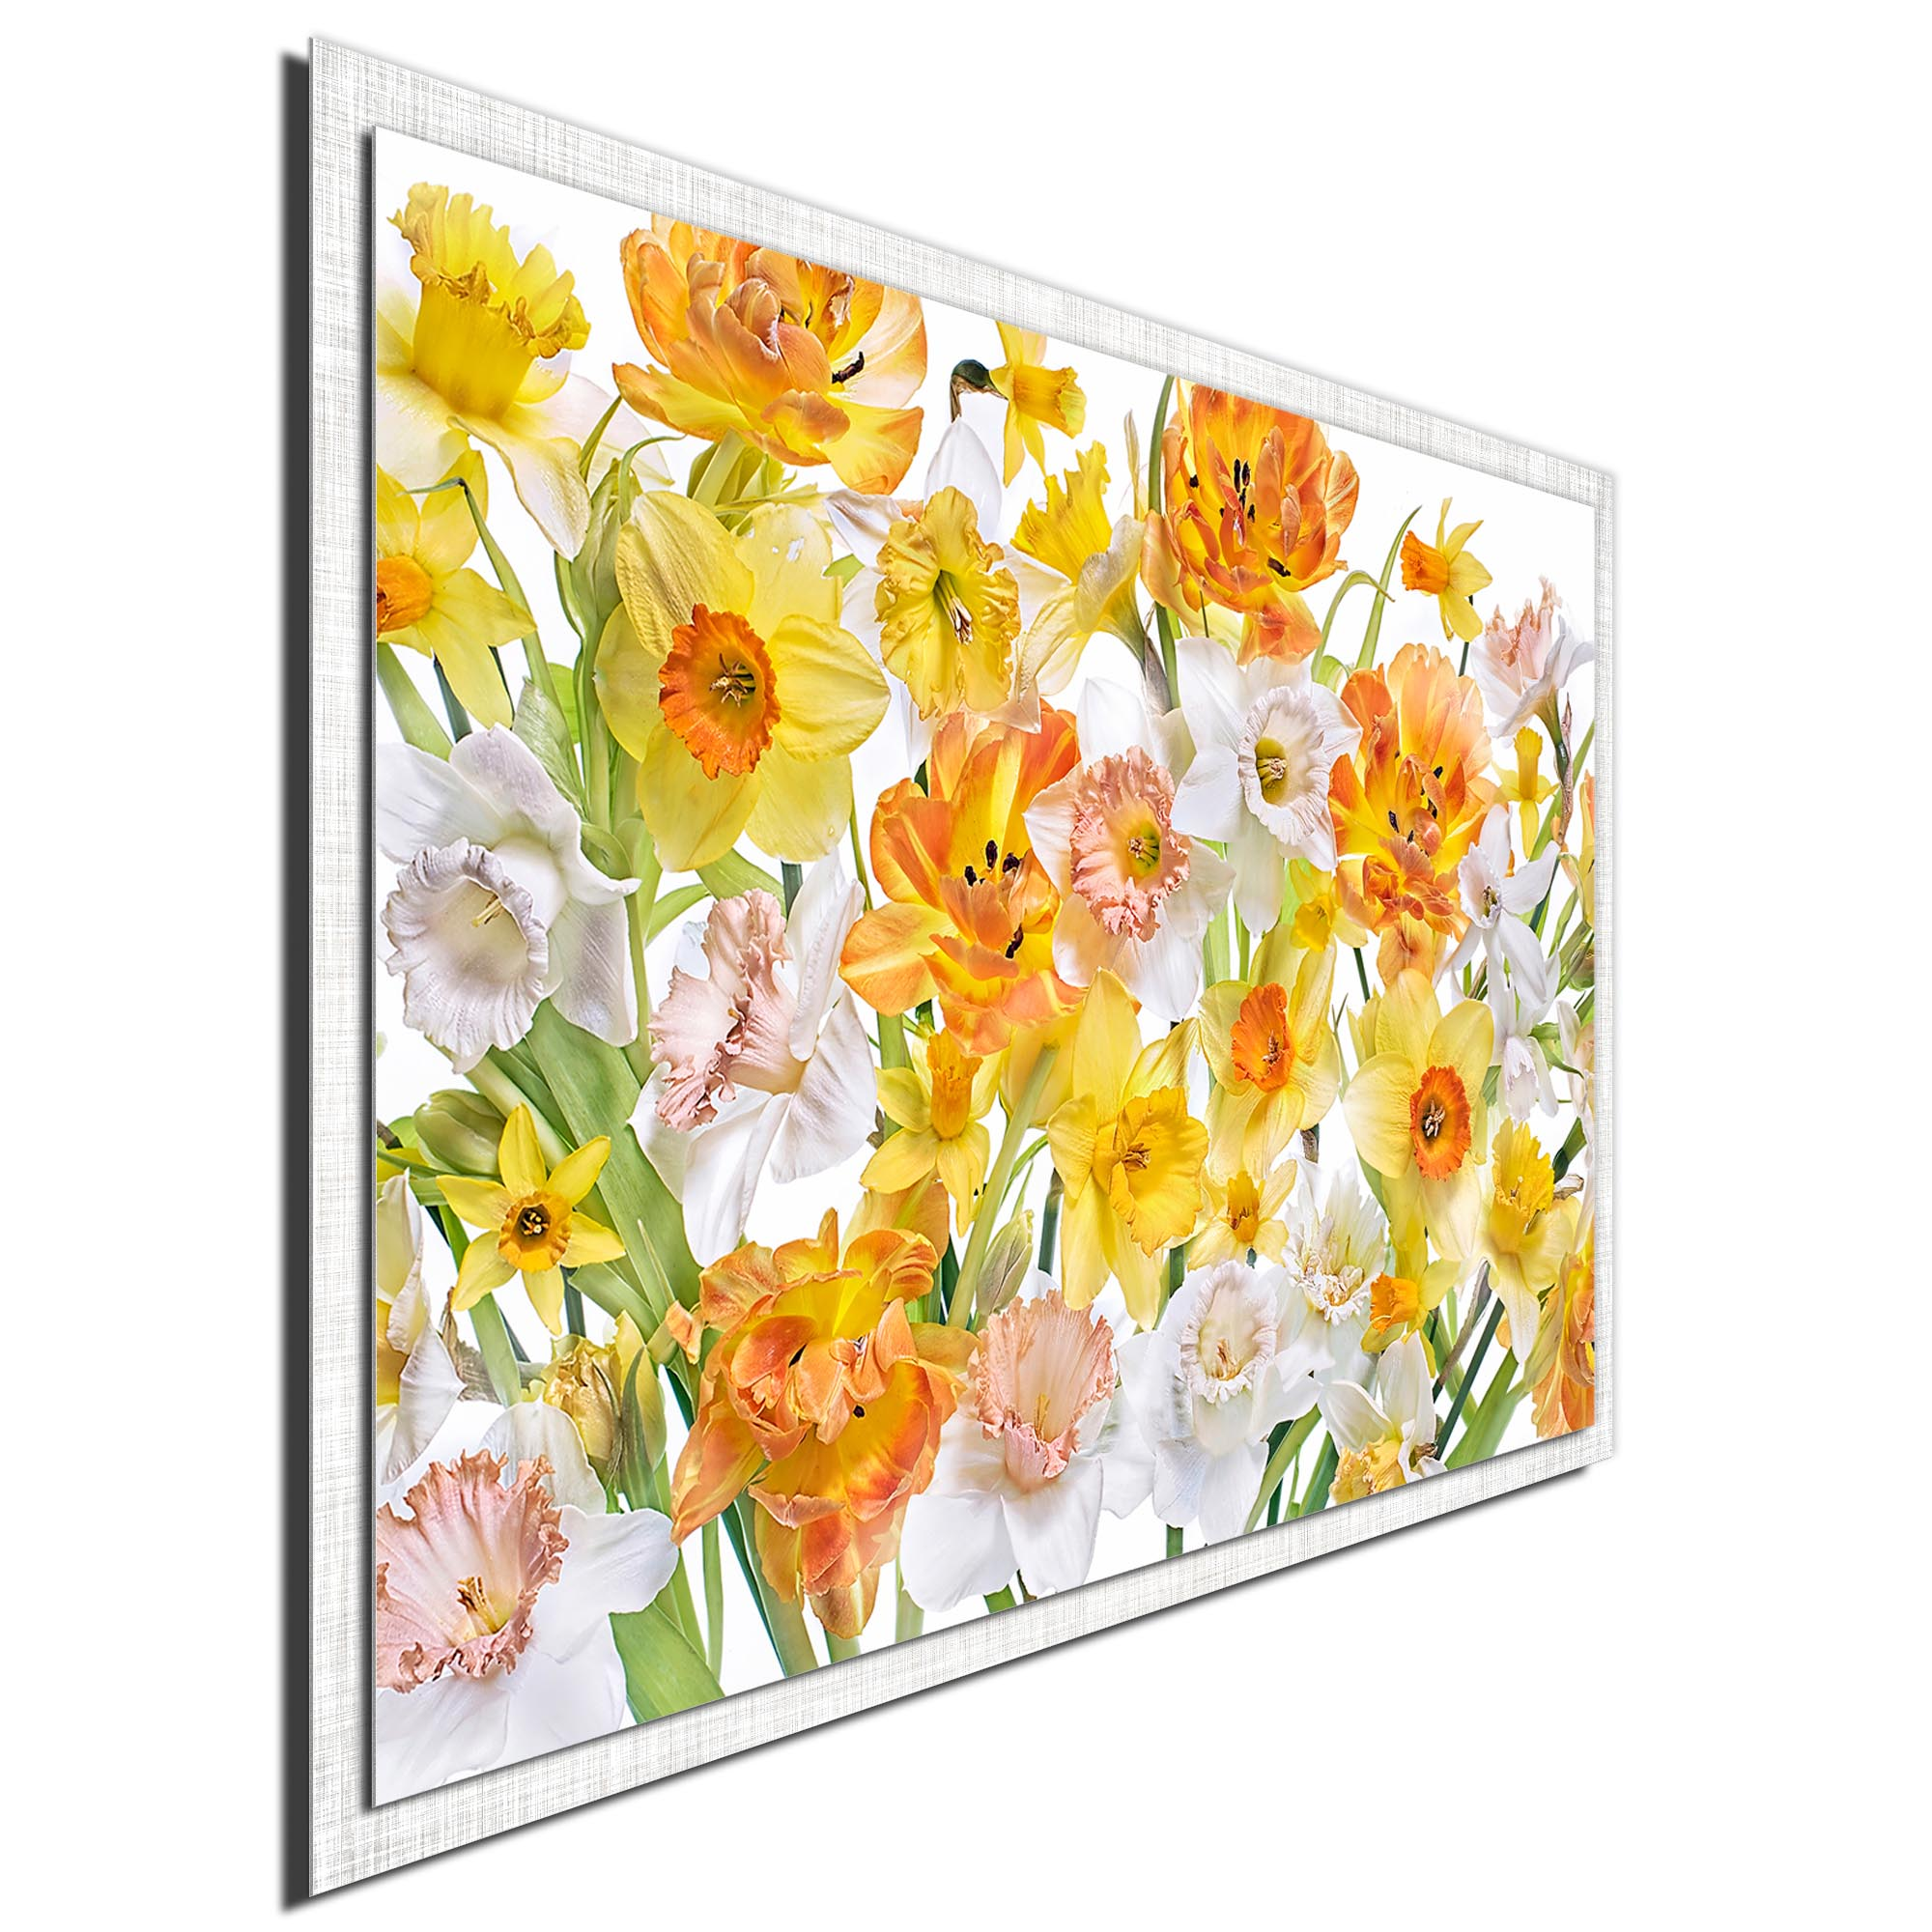 Spirited by Jacky Parker - Modern Farmhouse Floral on Metal - Image 2